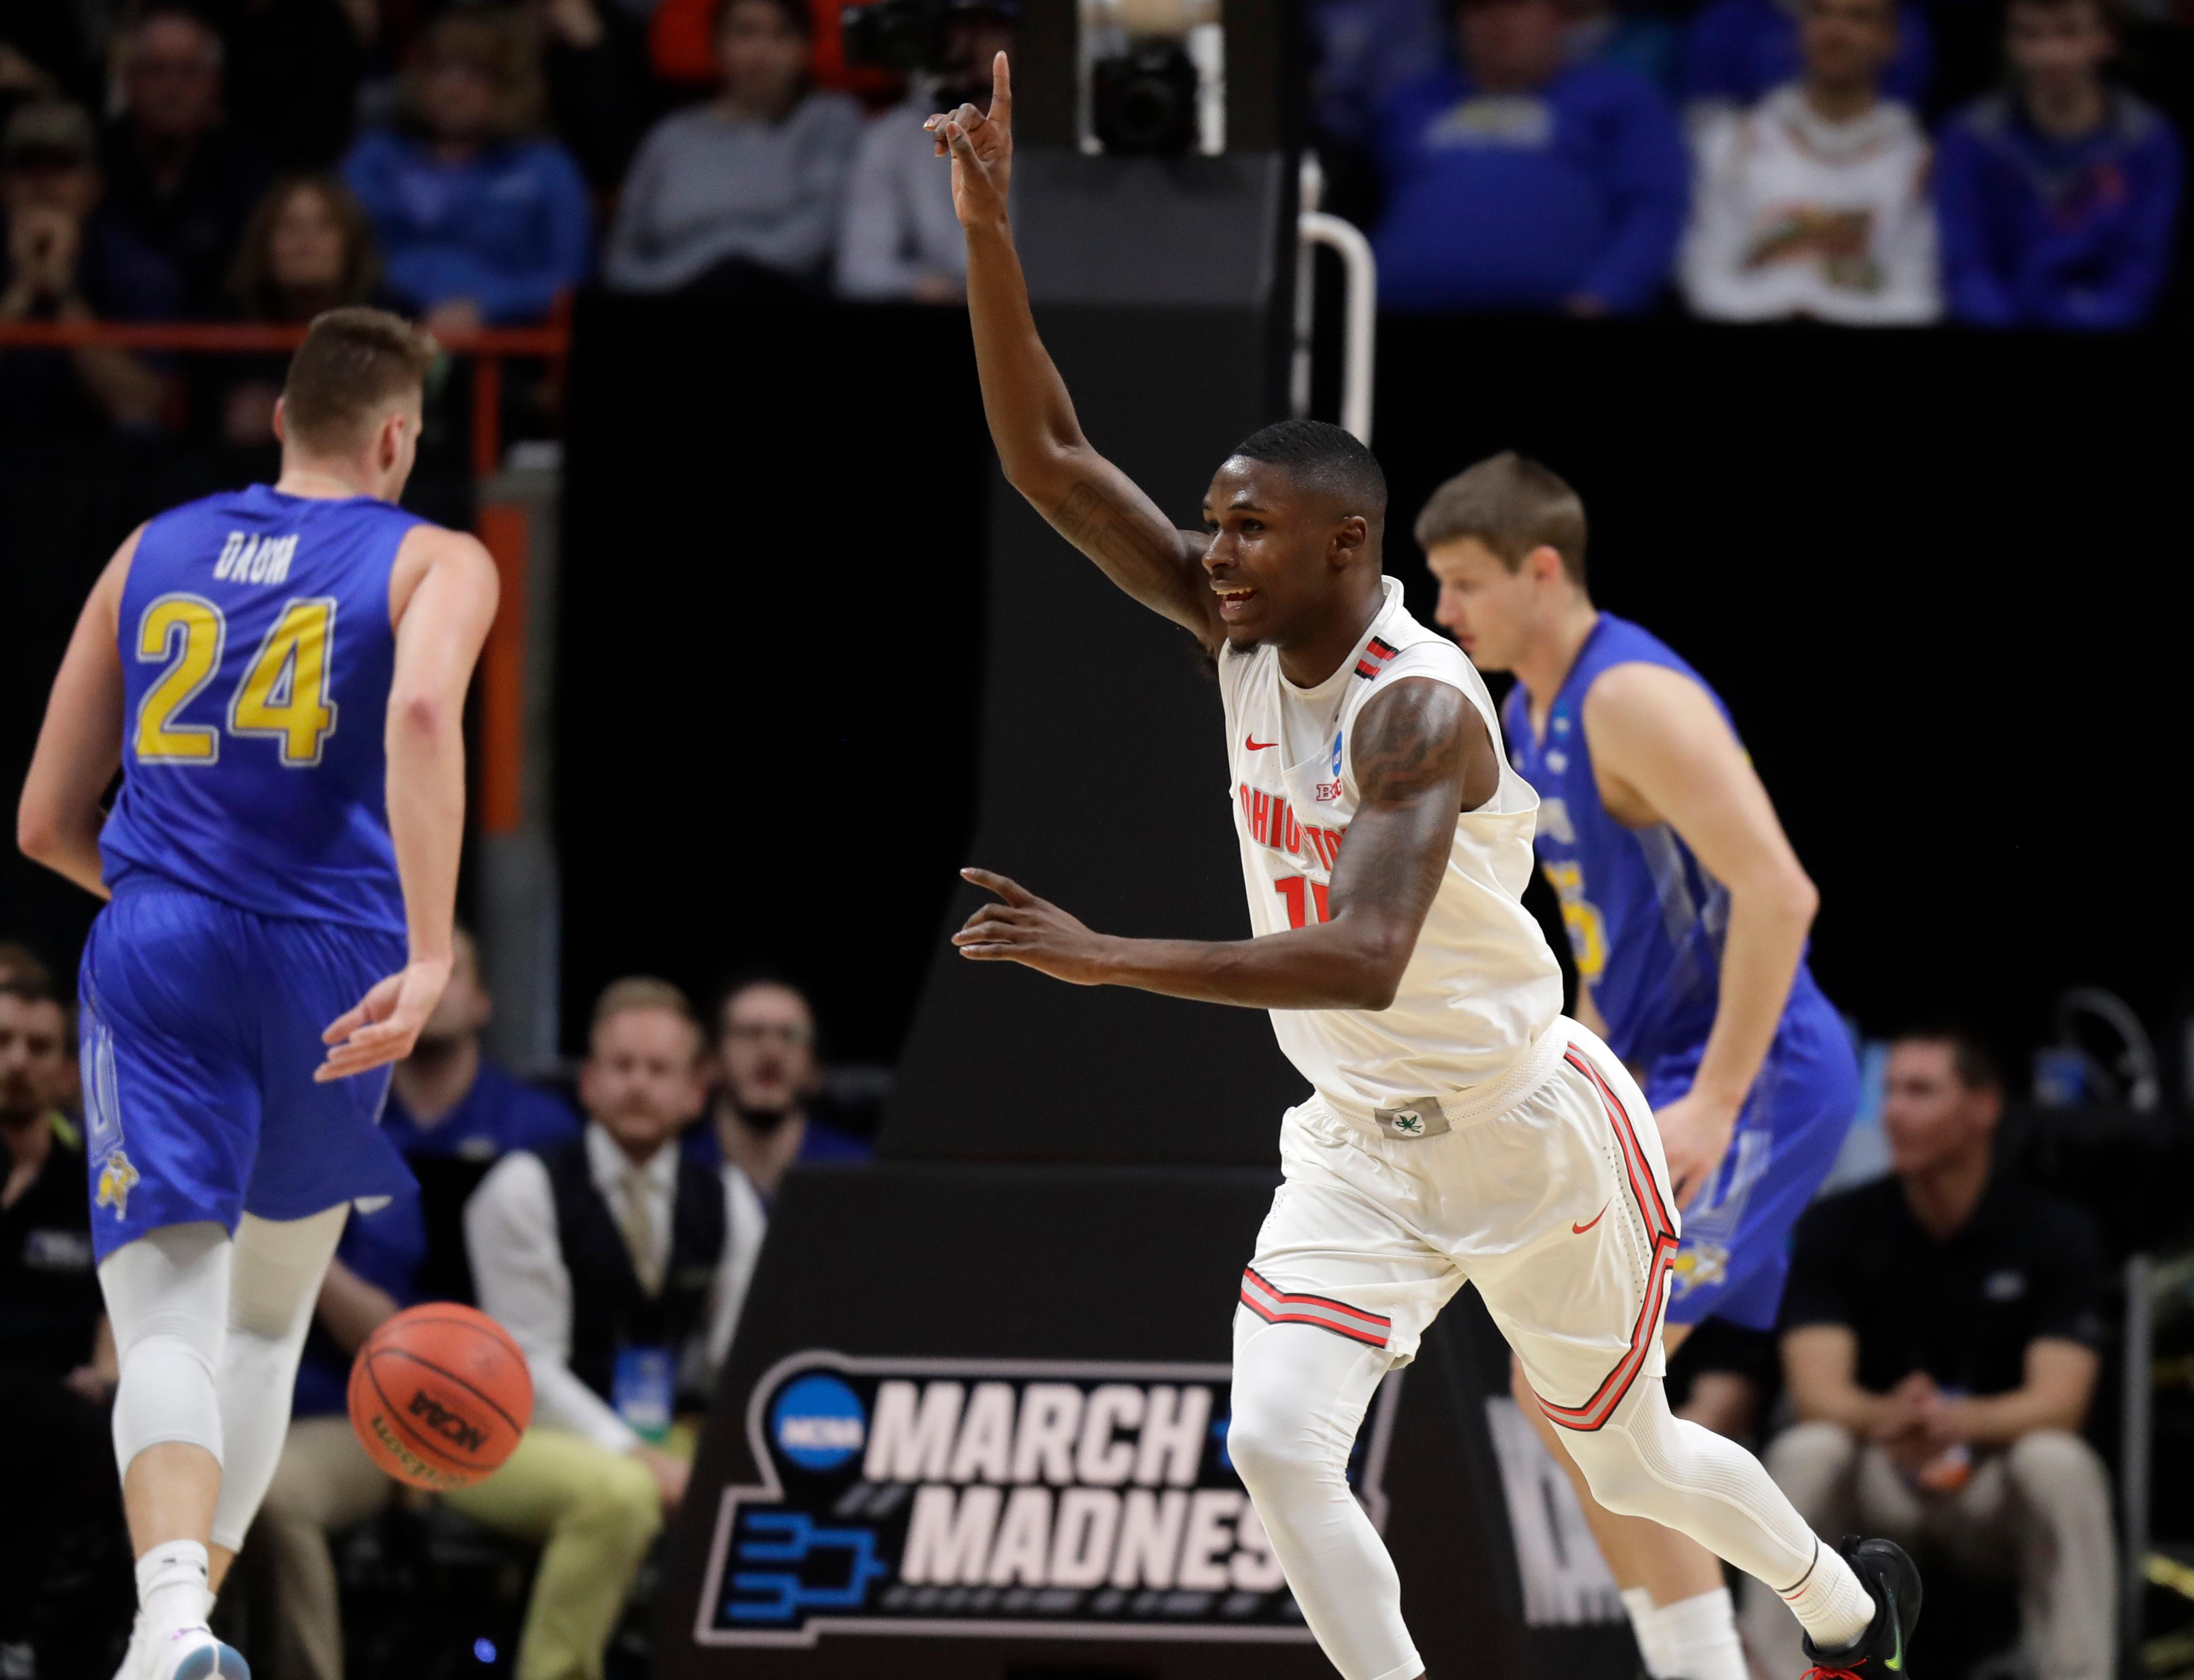 Ohio State guard Kam Williams, center, reacts after scoring during the first half of a first-round game against South Dakota State in the NCAA college basketball tournament, Thursday, March 15, 2018, in Boise, Idaho. (AP Photo/Ted S. Warren)